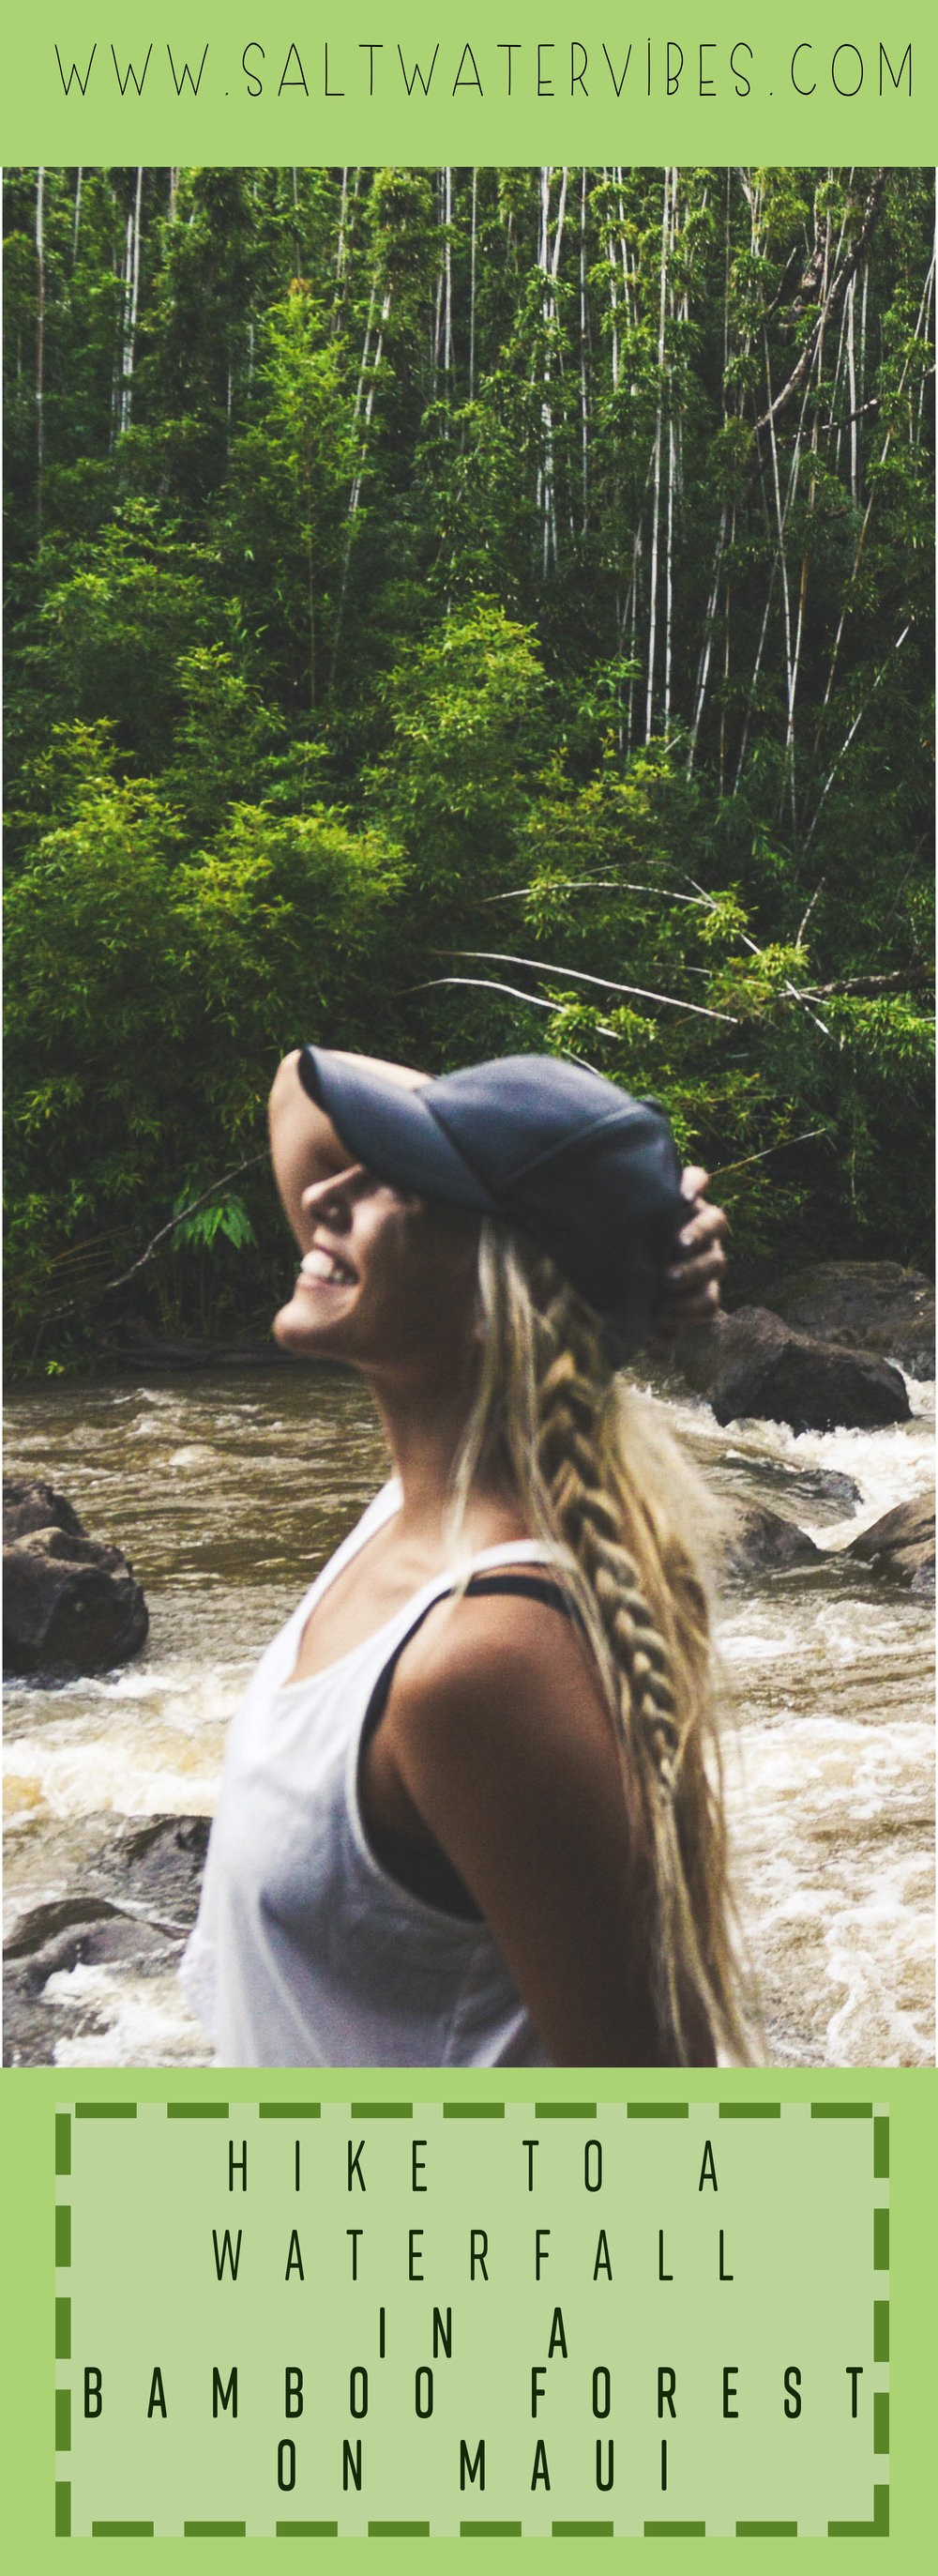 Bamboo Waterfall Hike + SaltWaterVibes